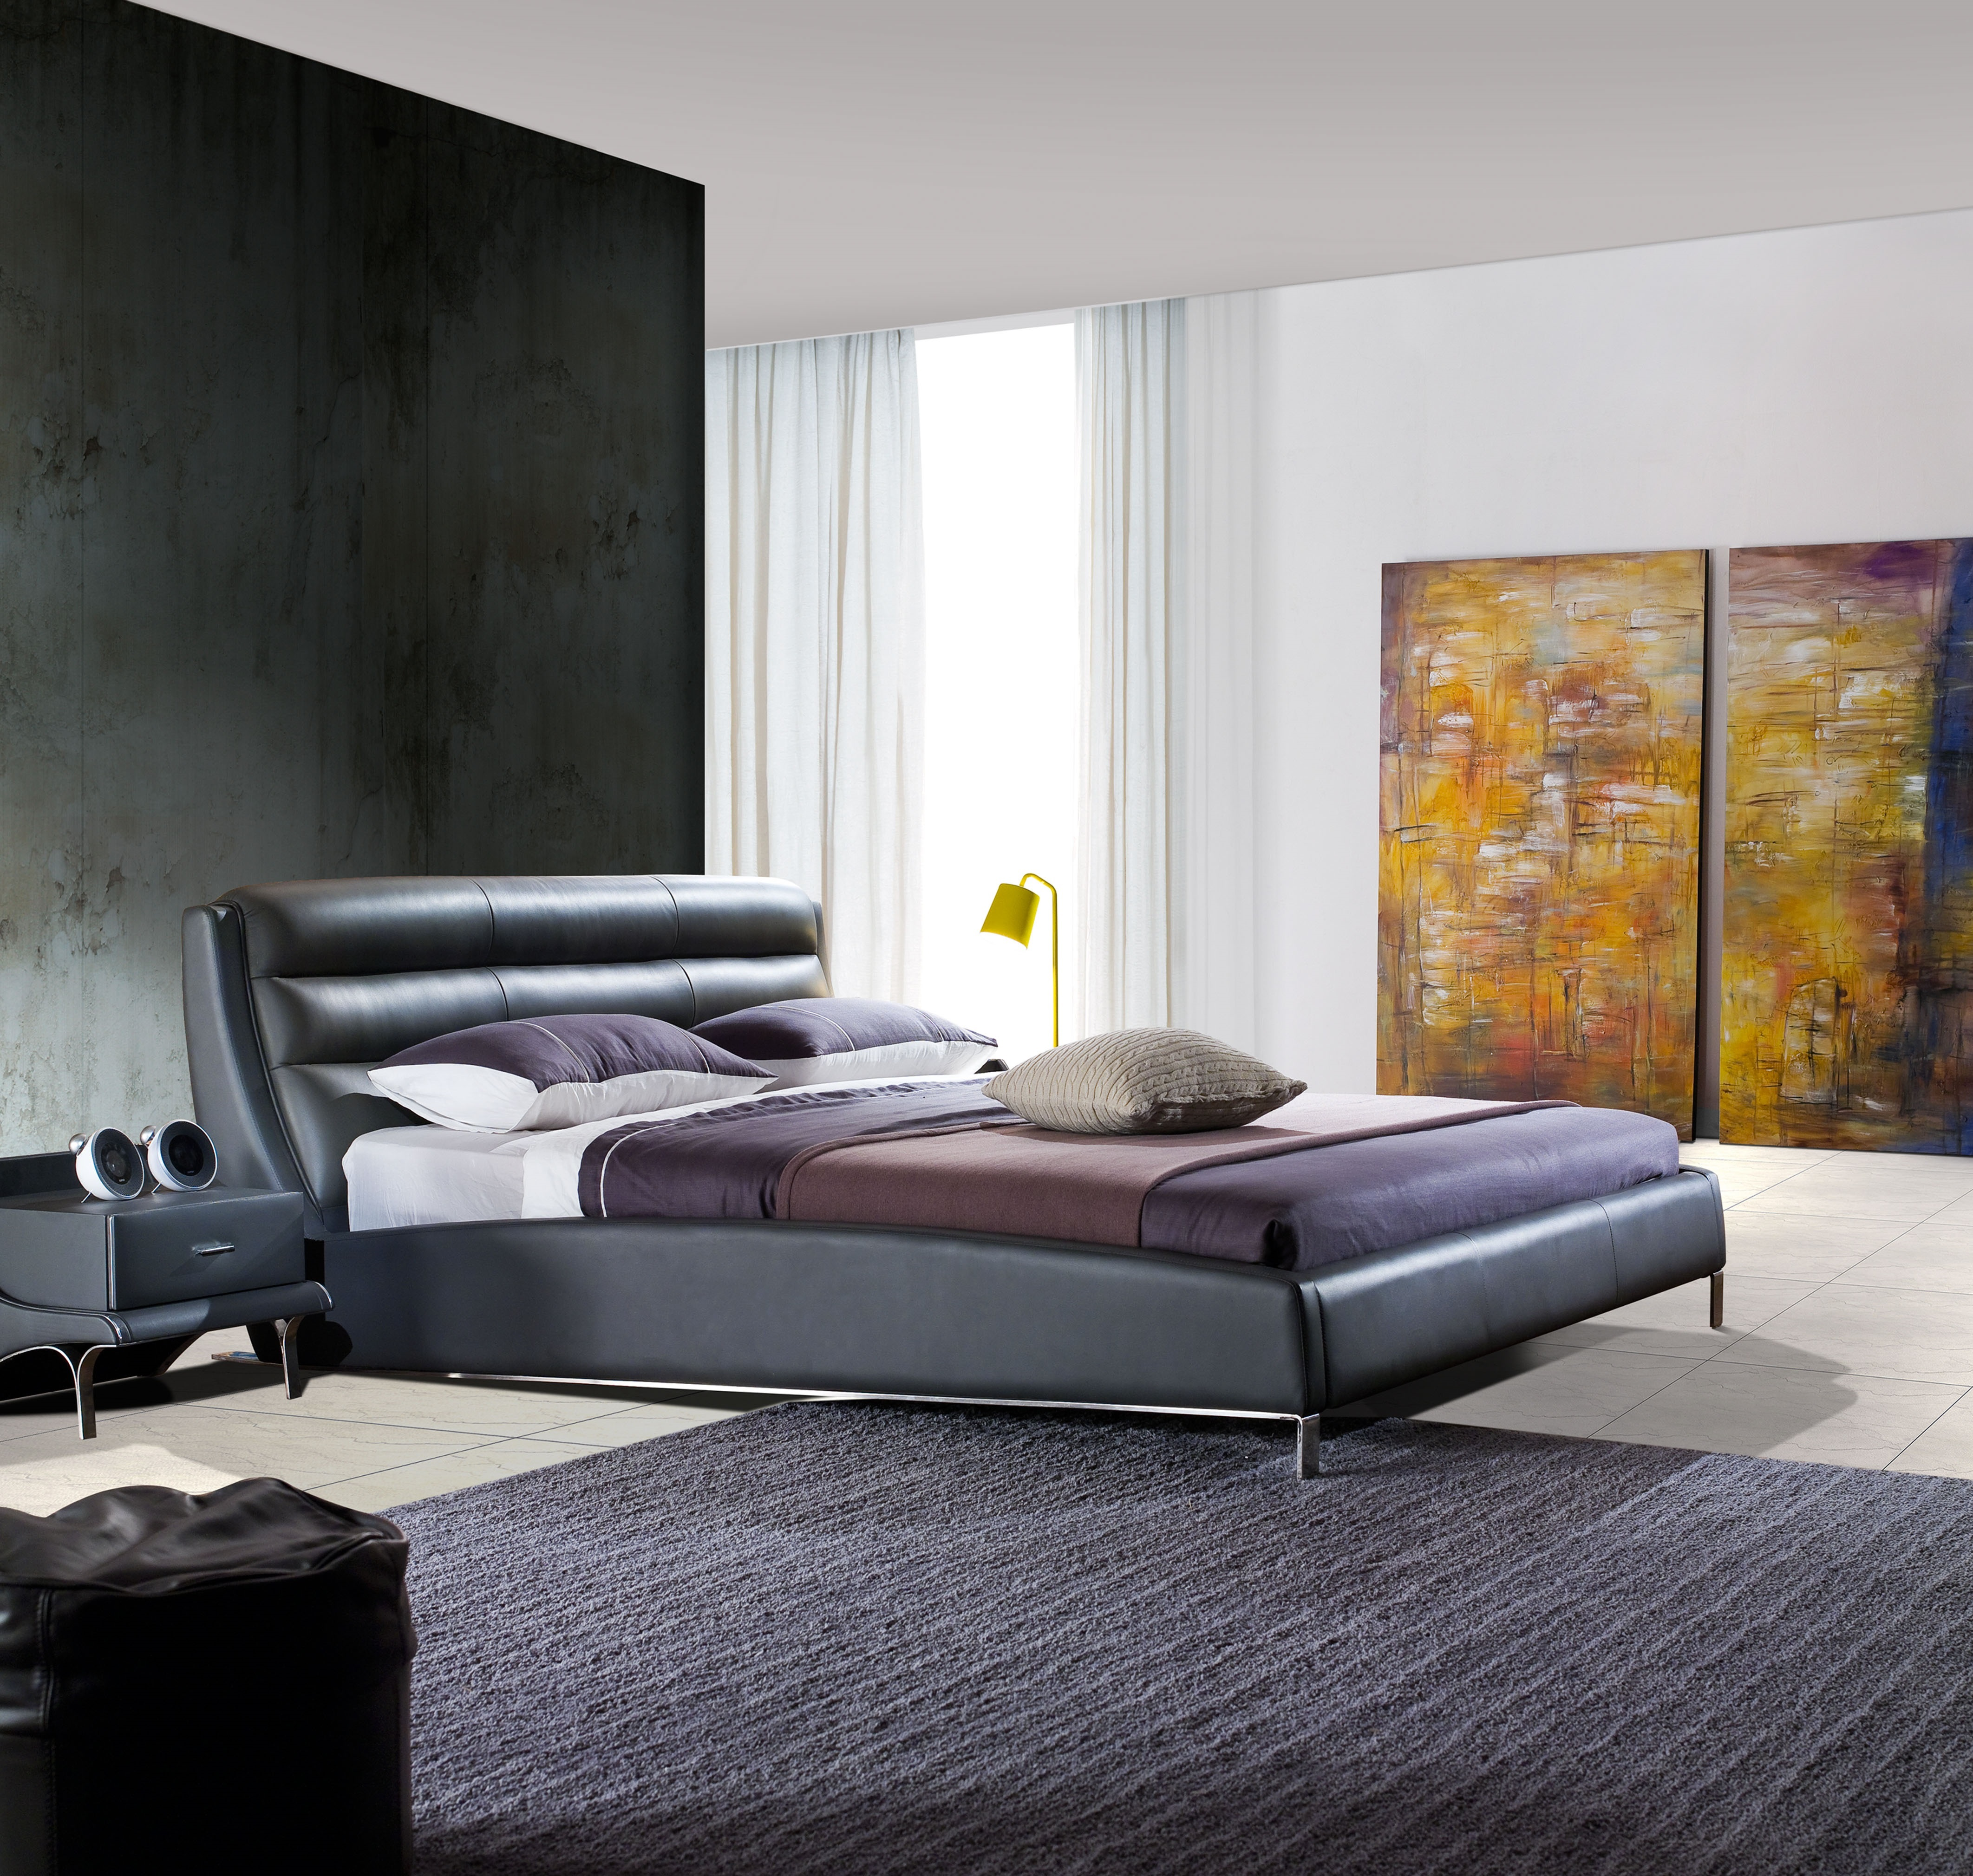 Stressless Sofas Dallas - House Of Denmark House Of Denmark